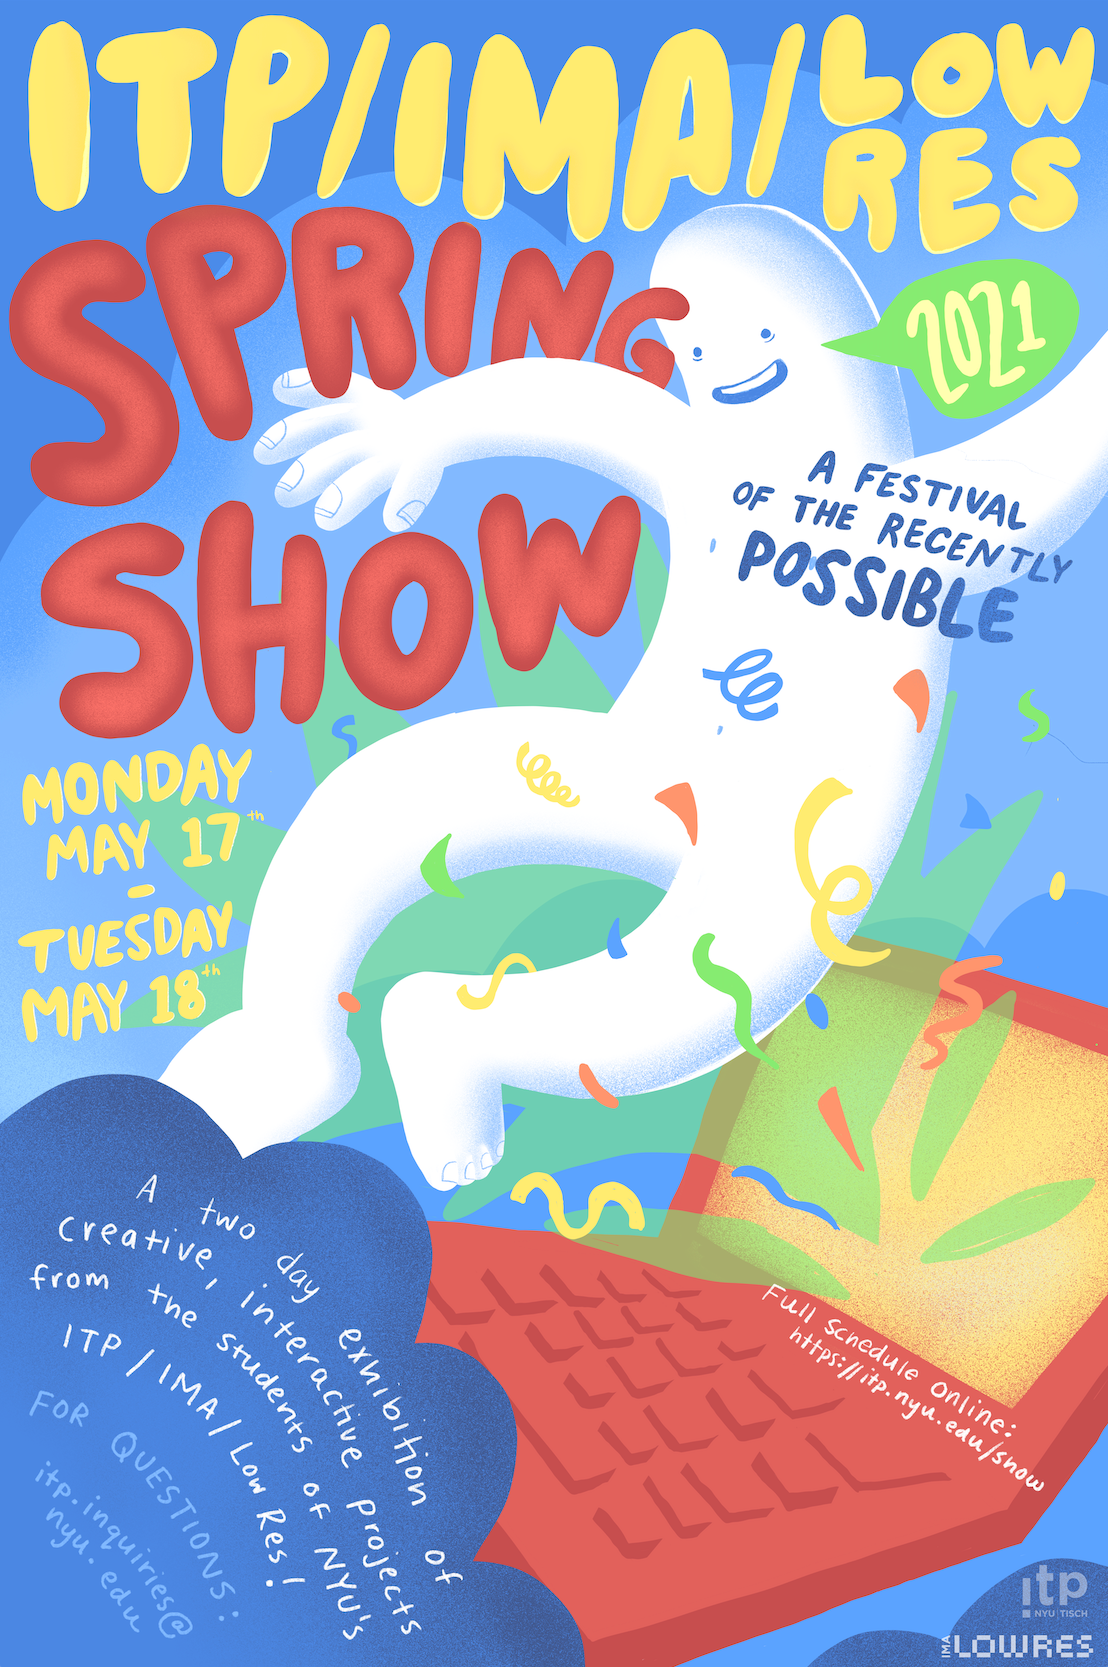 promotional poster for ITP's spring show featuring a cool dude dancing near a laptop.